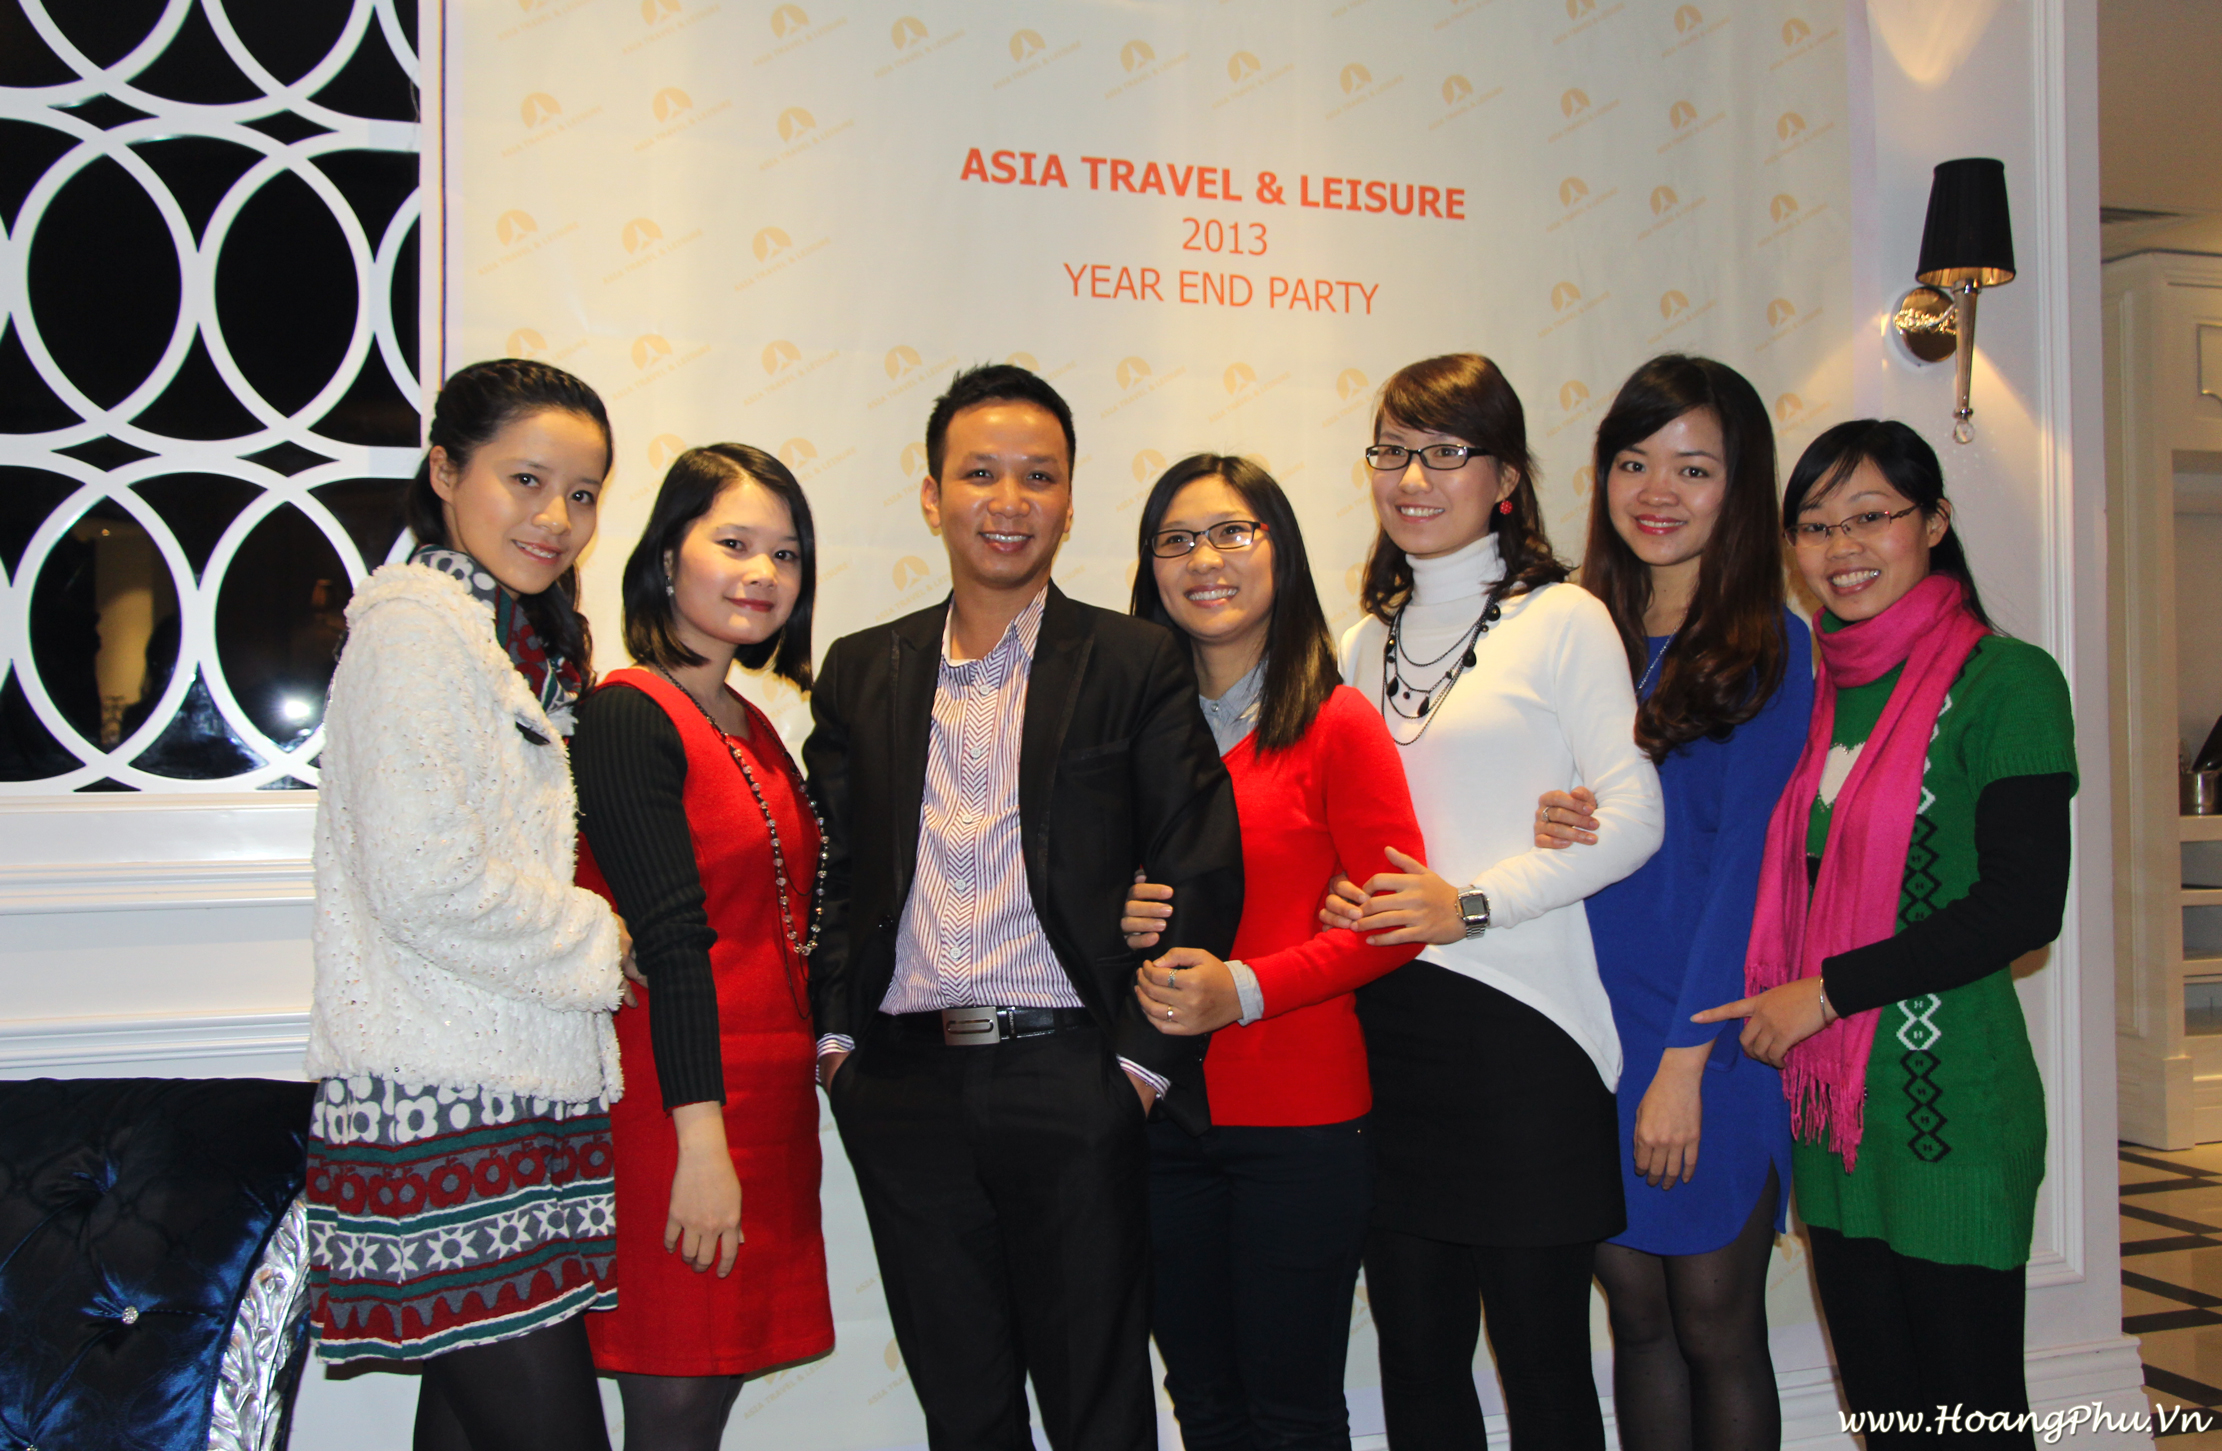 Asia Travel & Leisure's Year End Party 2013